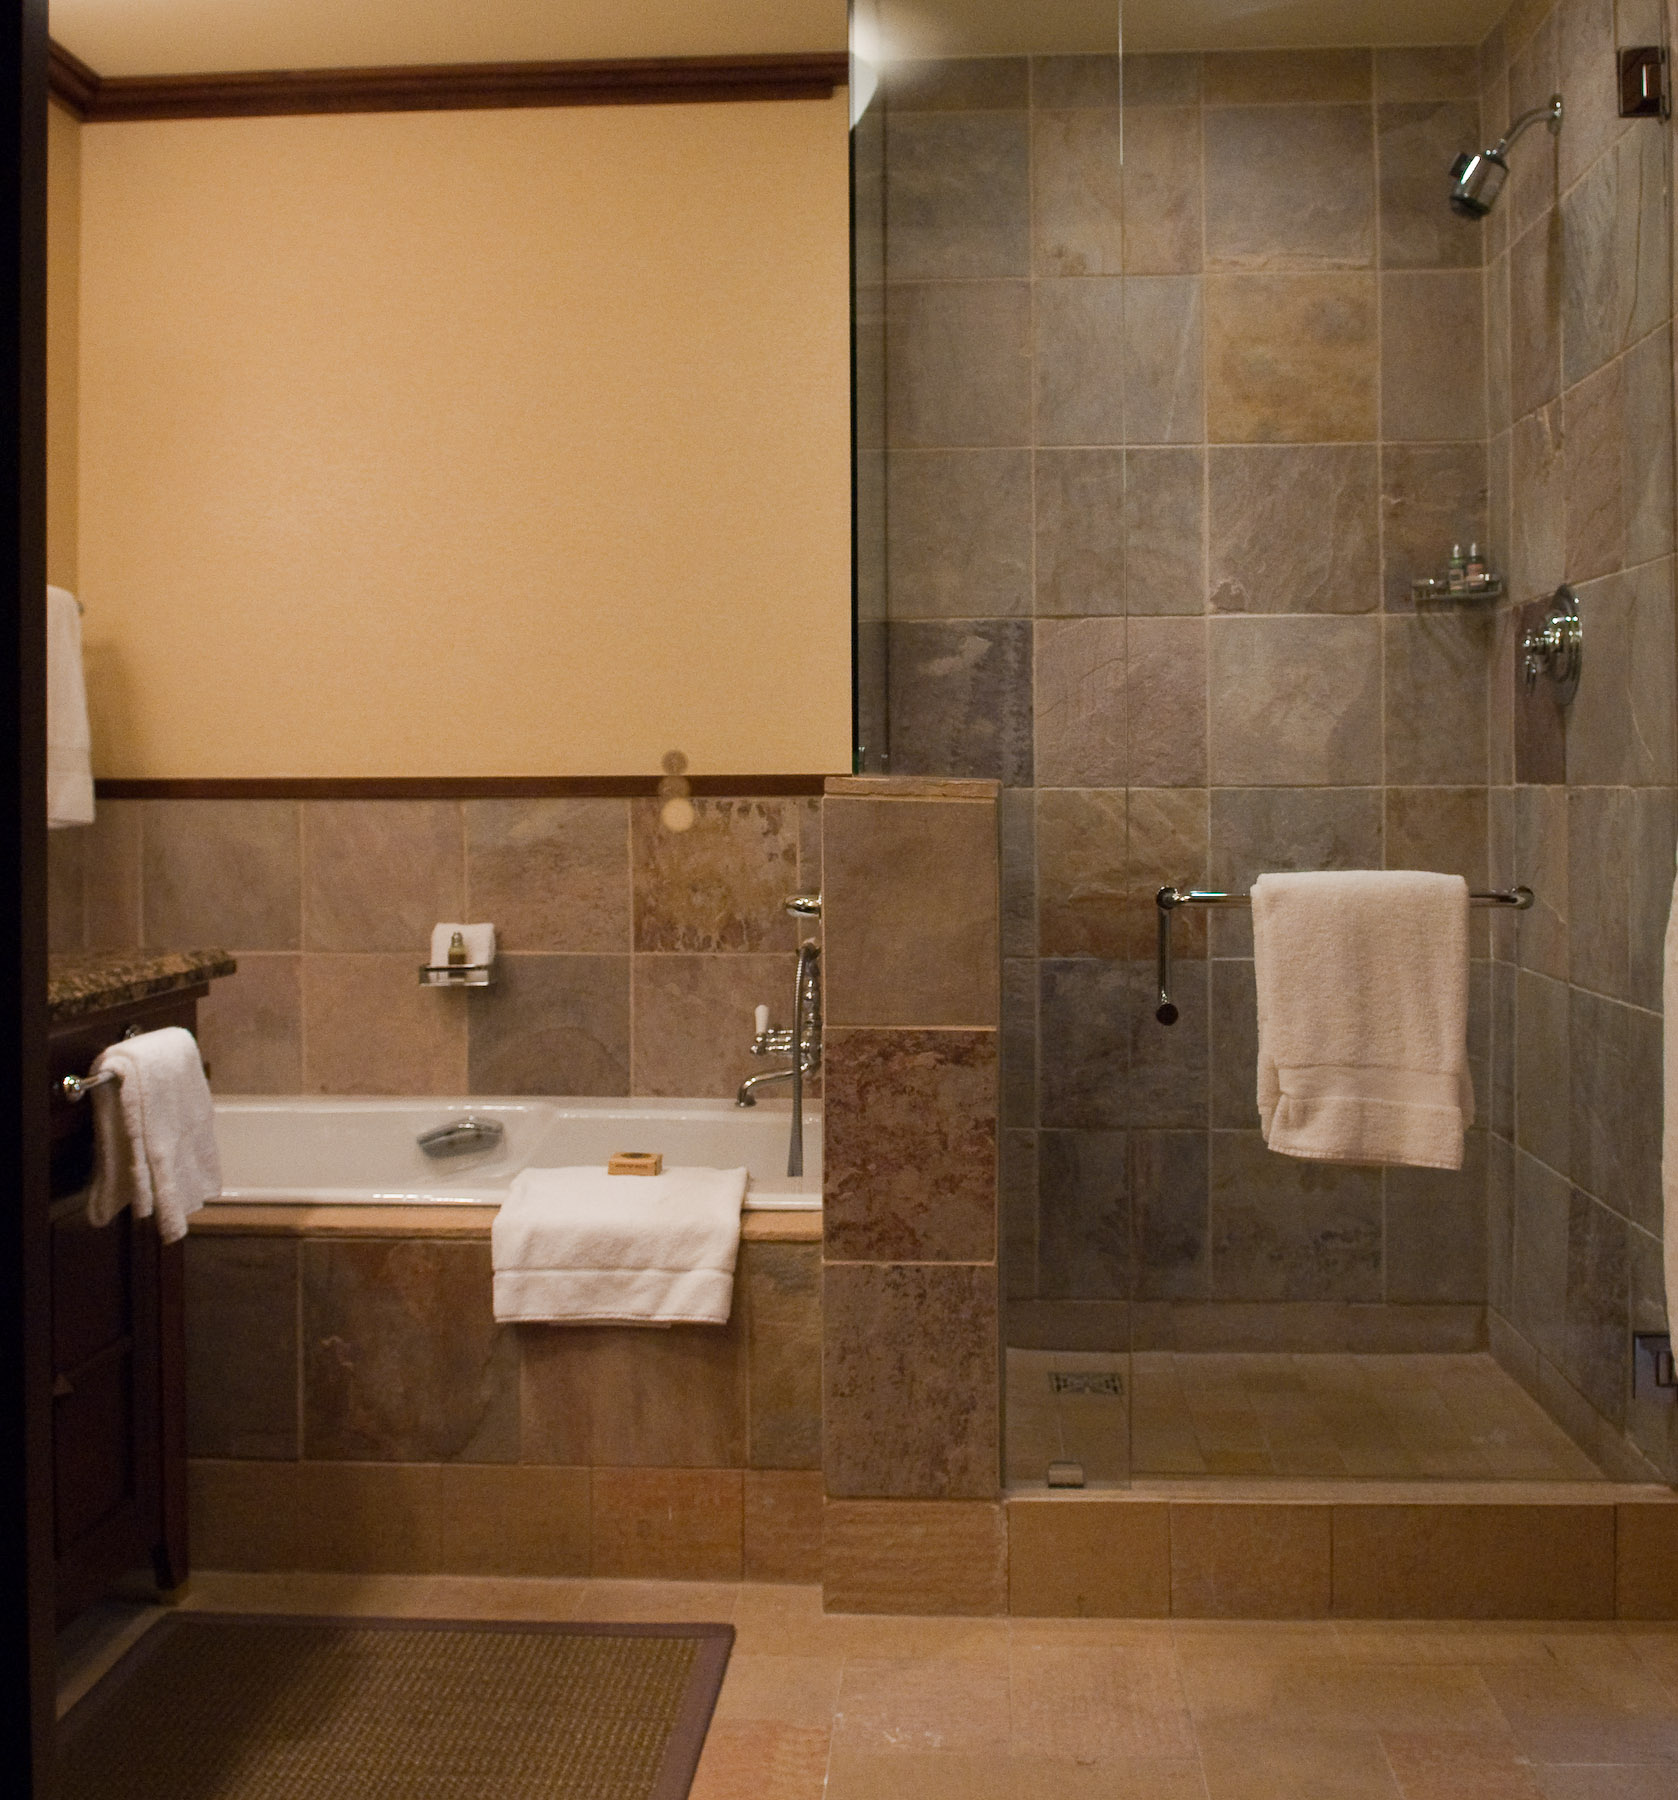 Jeffrey friedl 39 s blog deluxe executive suite at the for Bathtub and shower designs